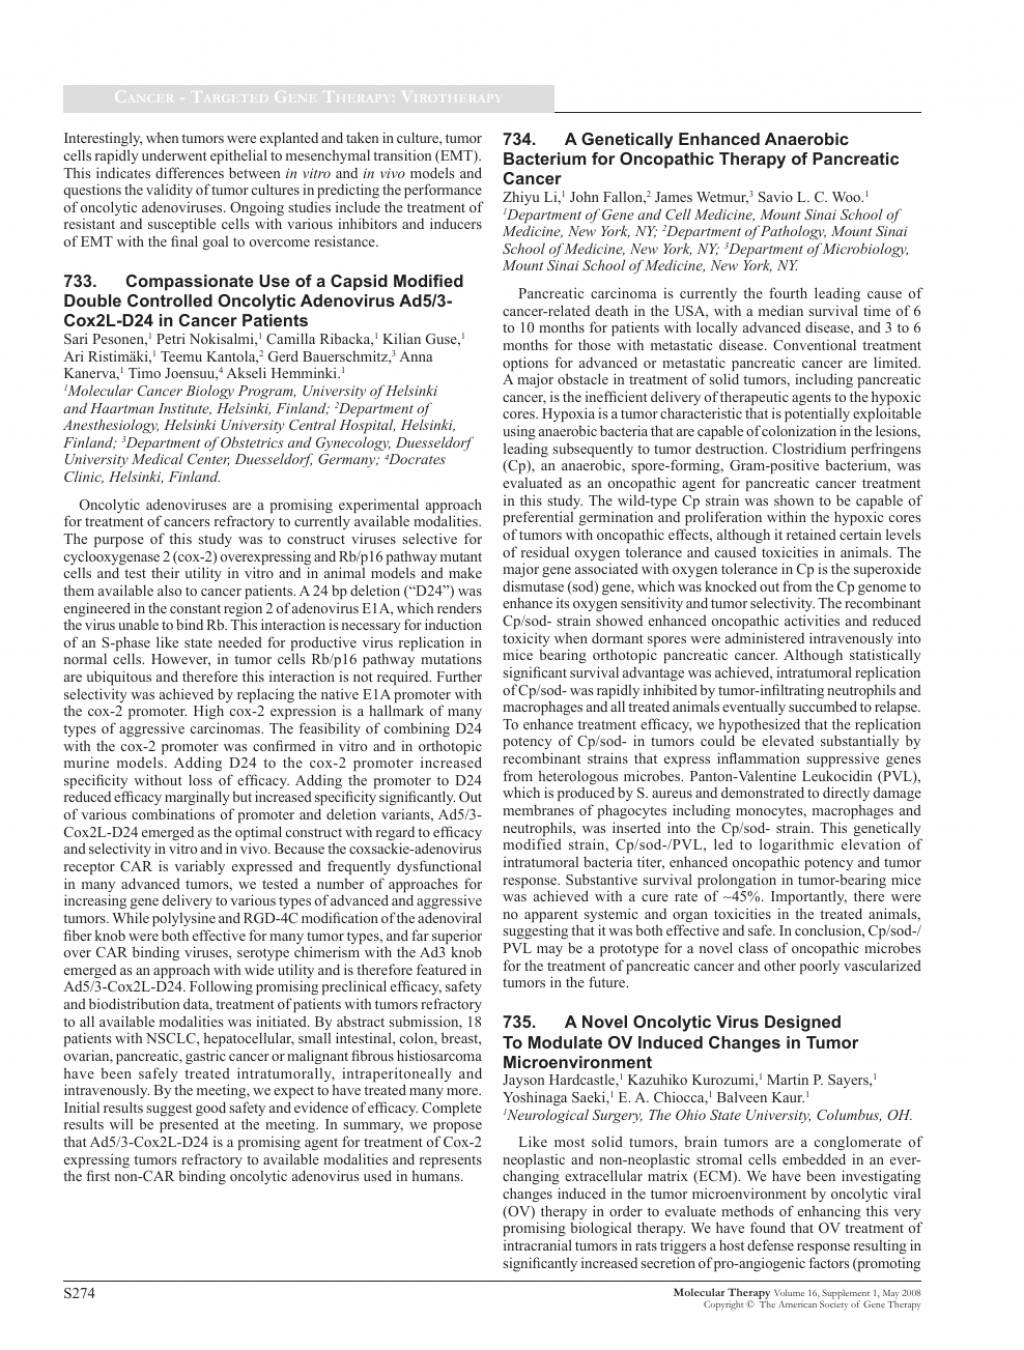 014 Research Paper Cancer Shocking Questions Large